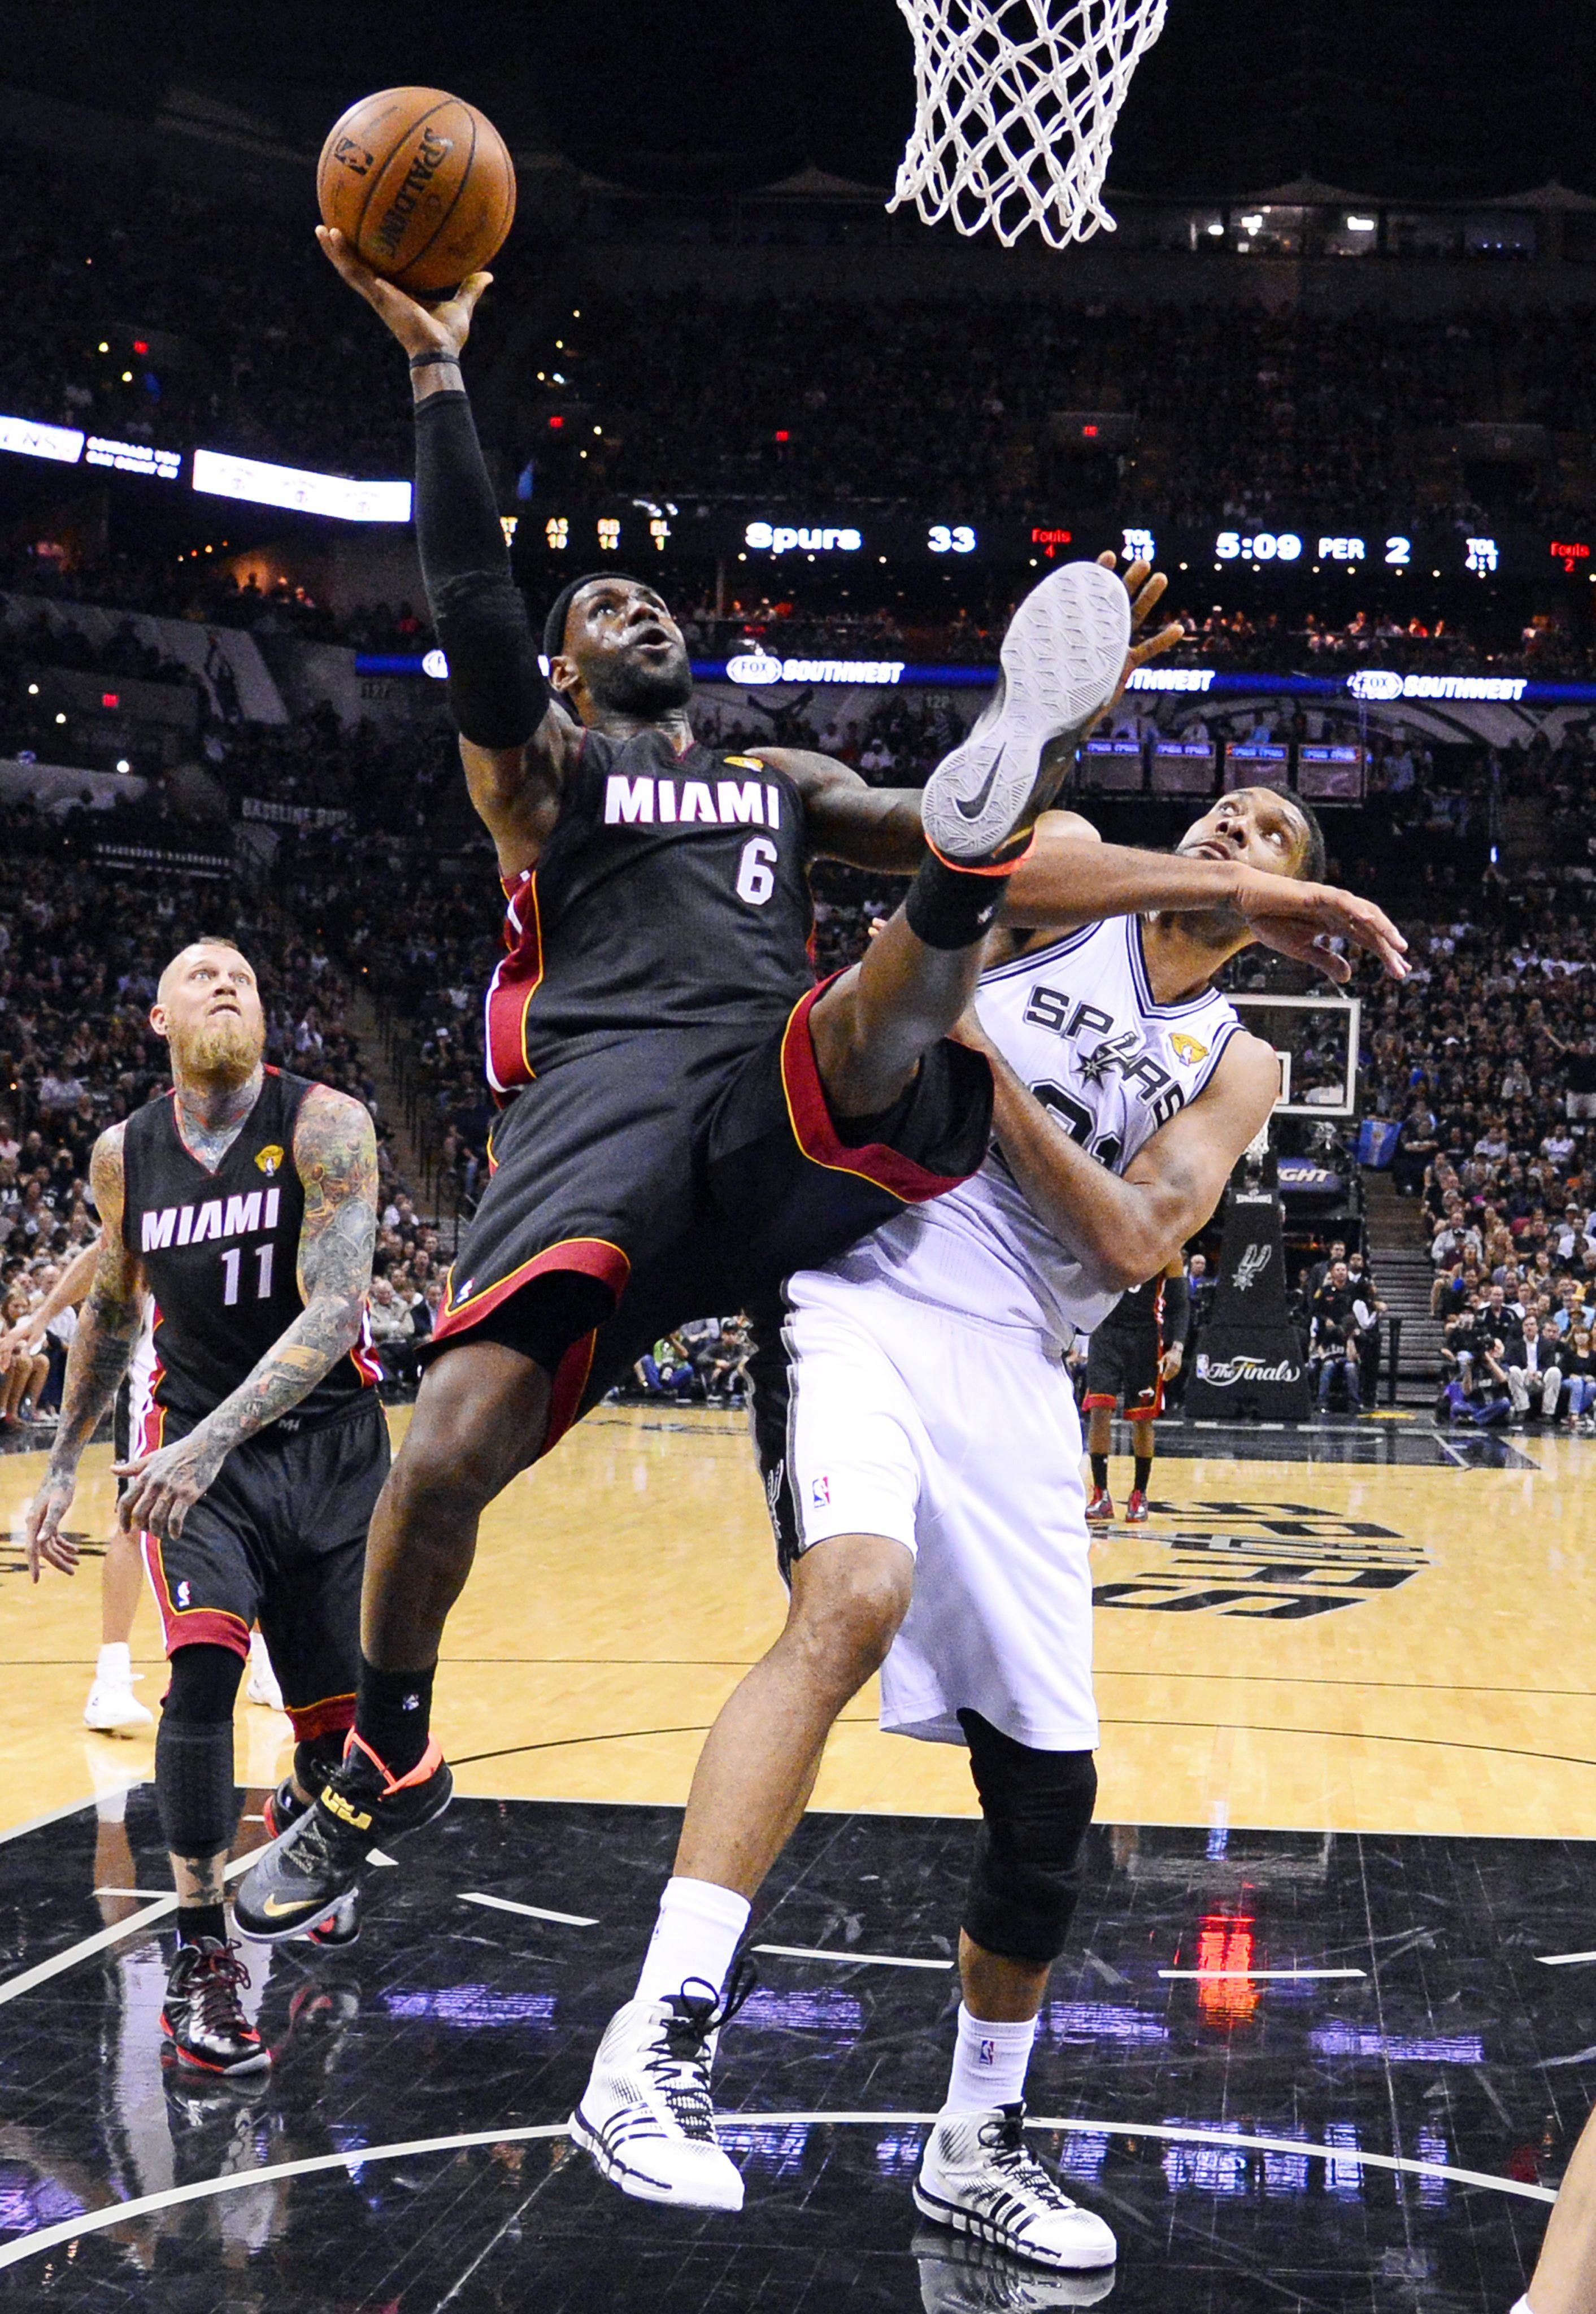 Miami Heat forward LeBron James (C) goes to the basket as San Antonio Spurs forward Tim Duncan (R) defends in the first half of their NBA Finals Game 2 in San Antonio on June 8, 2014.